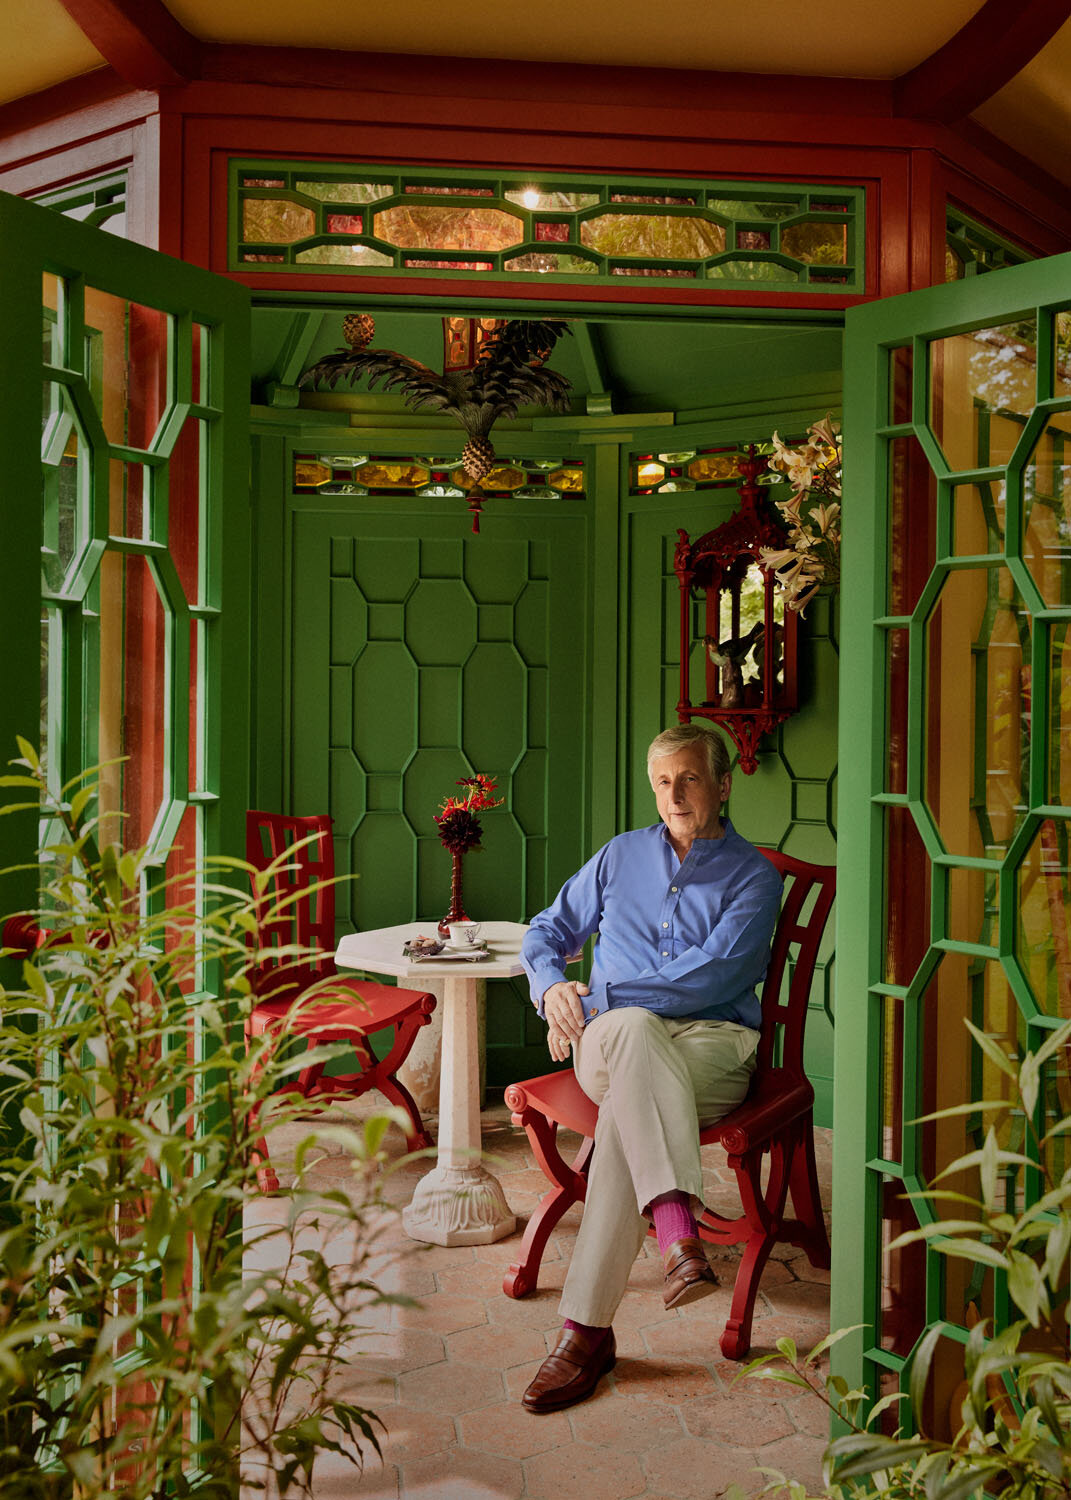 Philip Hewat-Jaboor for How To Spend It. - Last month I had the pleasure of photographing art advisor, collector and chairman of Masterpiece London, Philip Hewat-Jaboor in his Jersey home for the Financial Times How To Spend It.